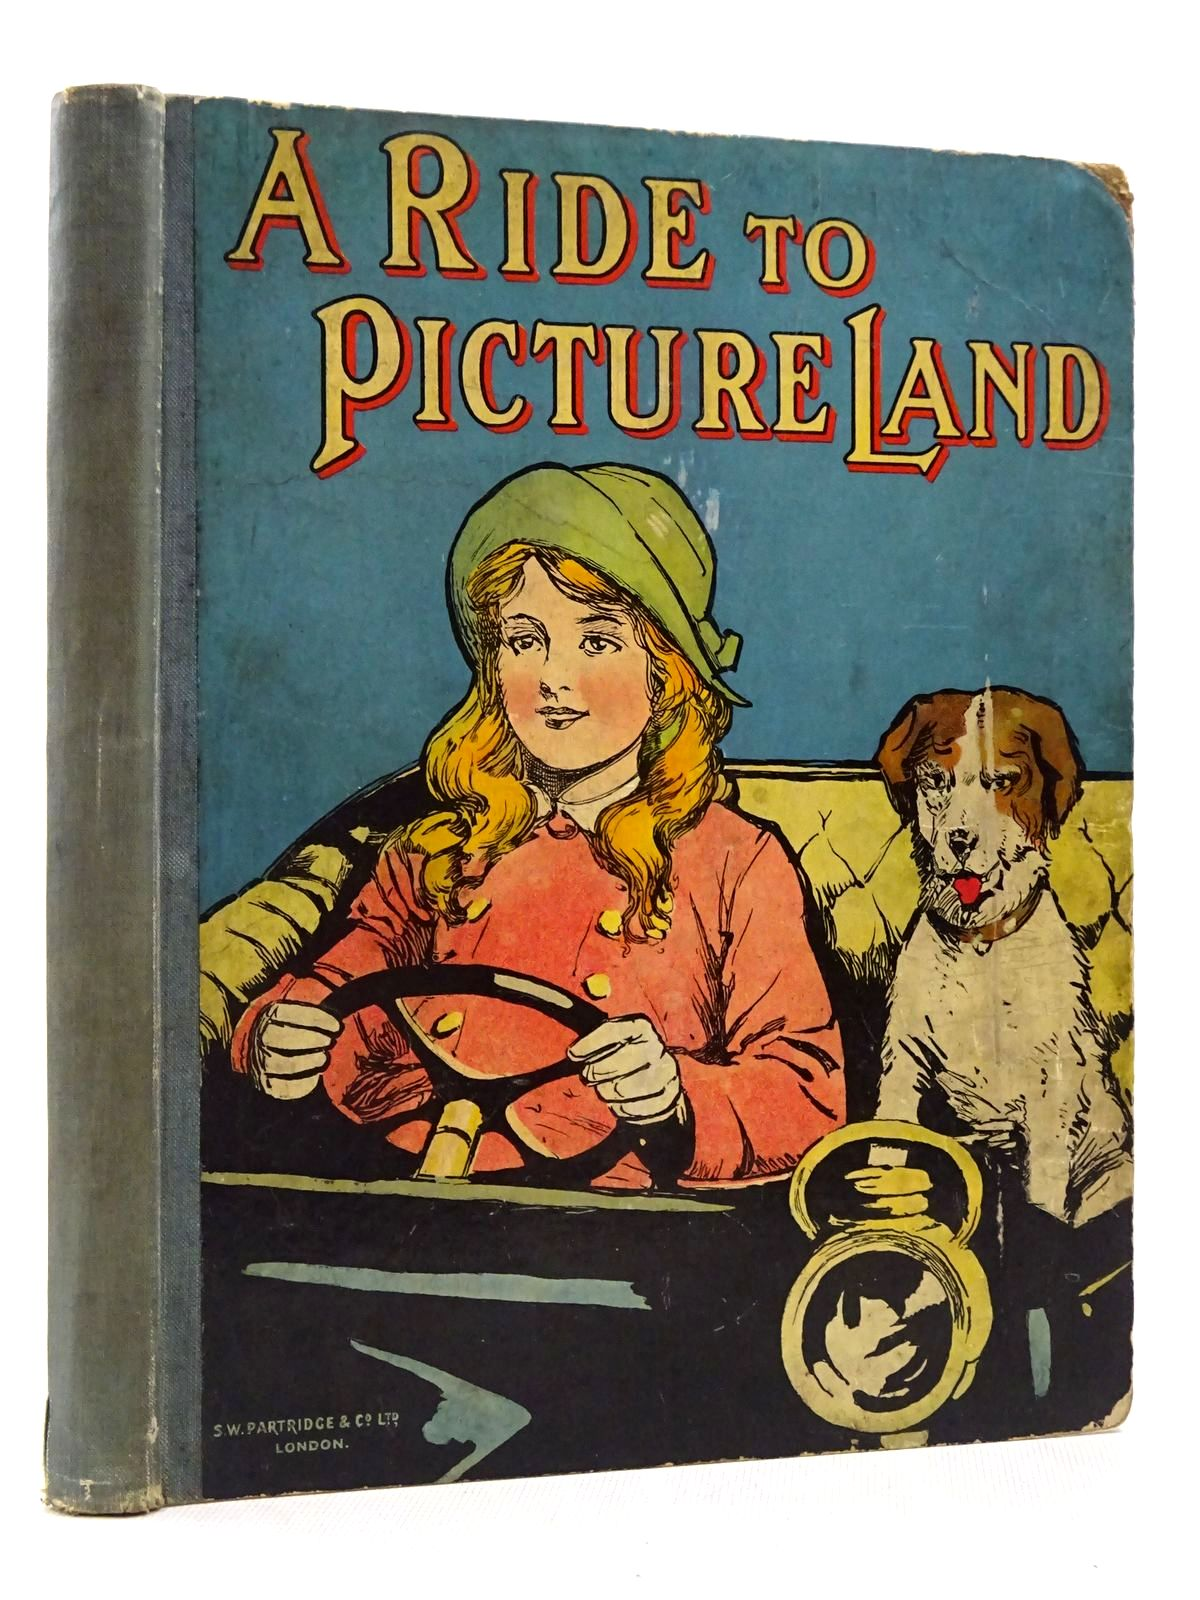 Photo of A RIDE TO PICTURELAND written by Moore, Dorothea Talbot, Ethel Lea, John Scott-Hopper, Queenie et al, illustrated by Wain, Louis Brisley, Joyce Lankester Watson, Audrey J. Neilson, Harry B. Bowley, A.L. et al., published by S.W. Partridge & Co. Ltd. (STOCK CODE: 2129171)  for sale by Stella & Rose's Books